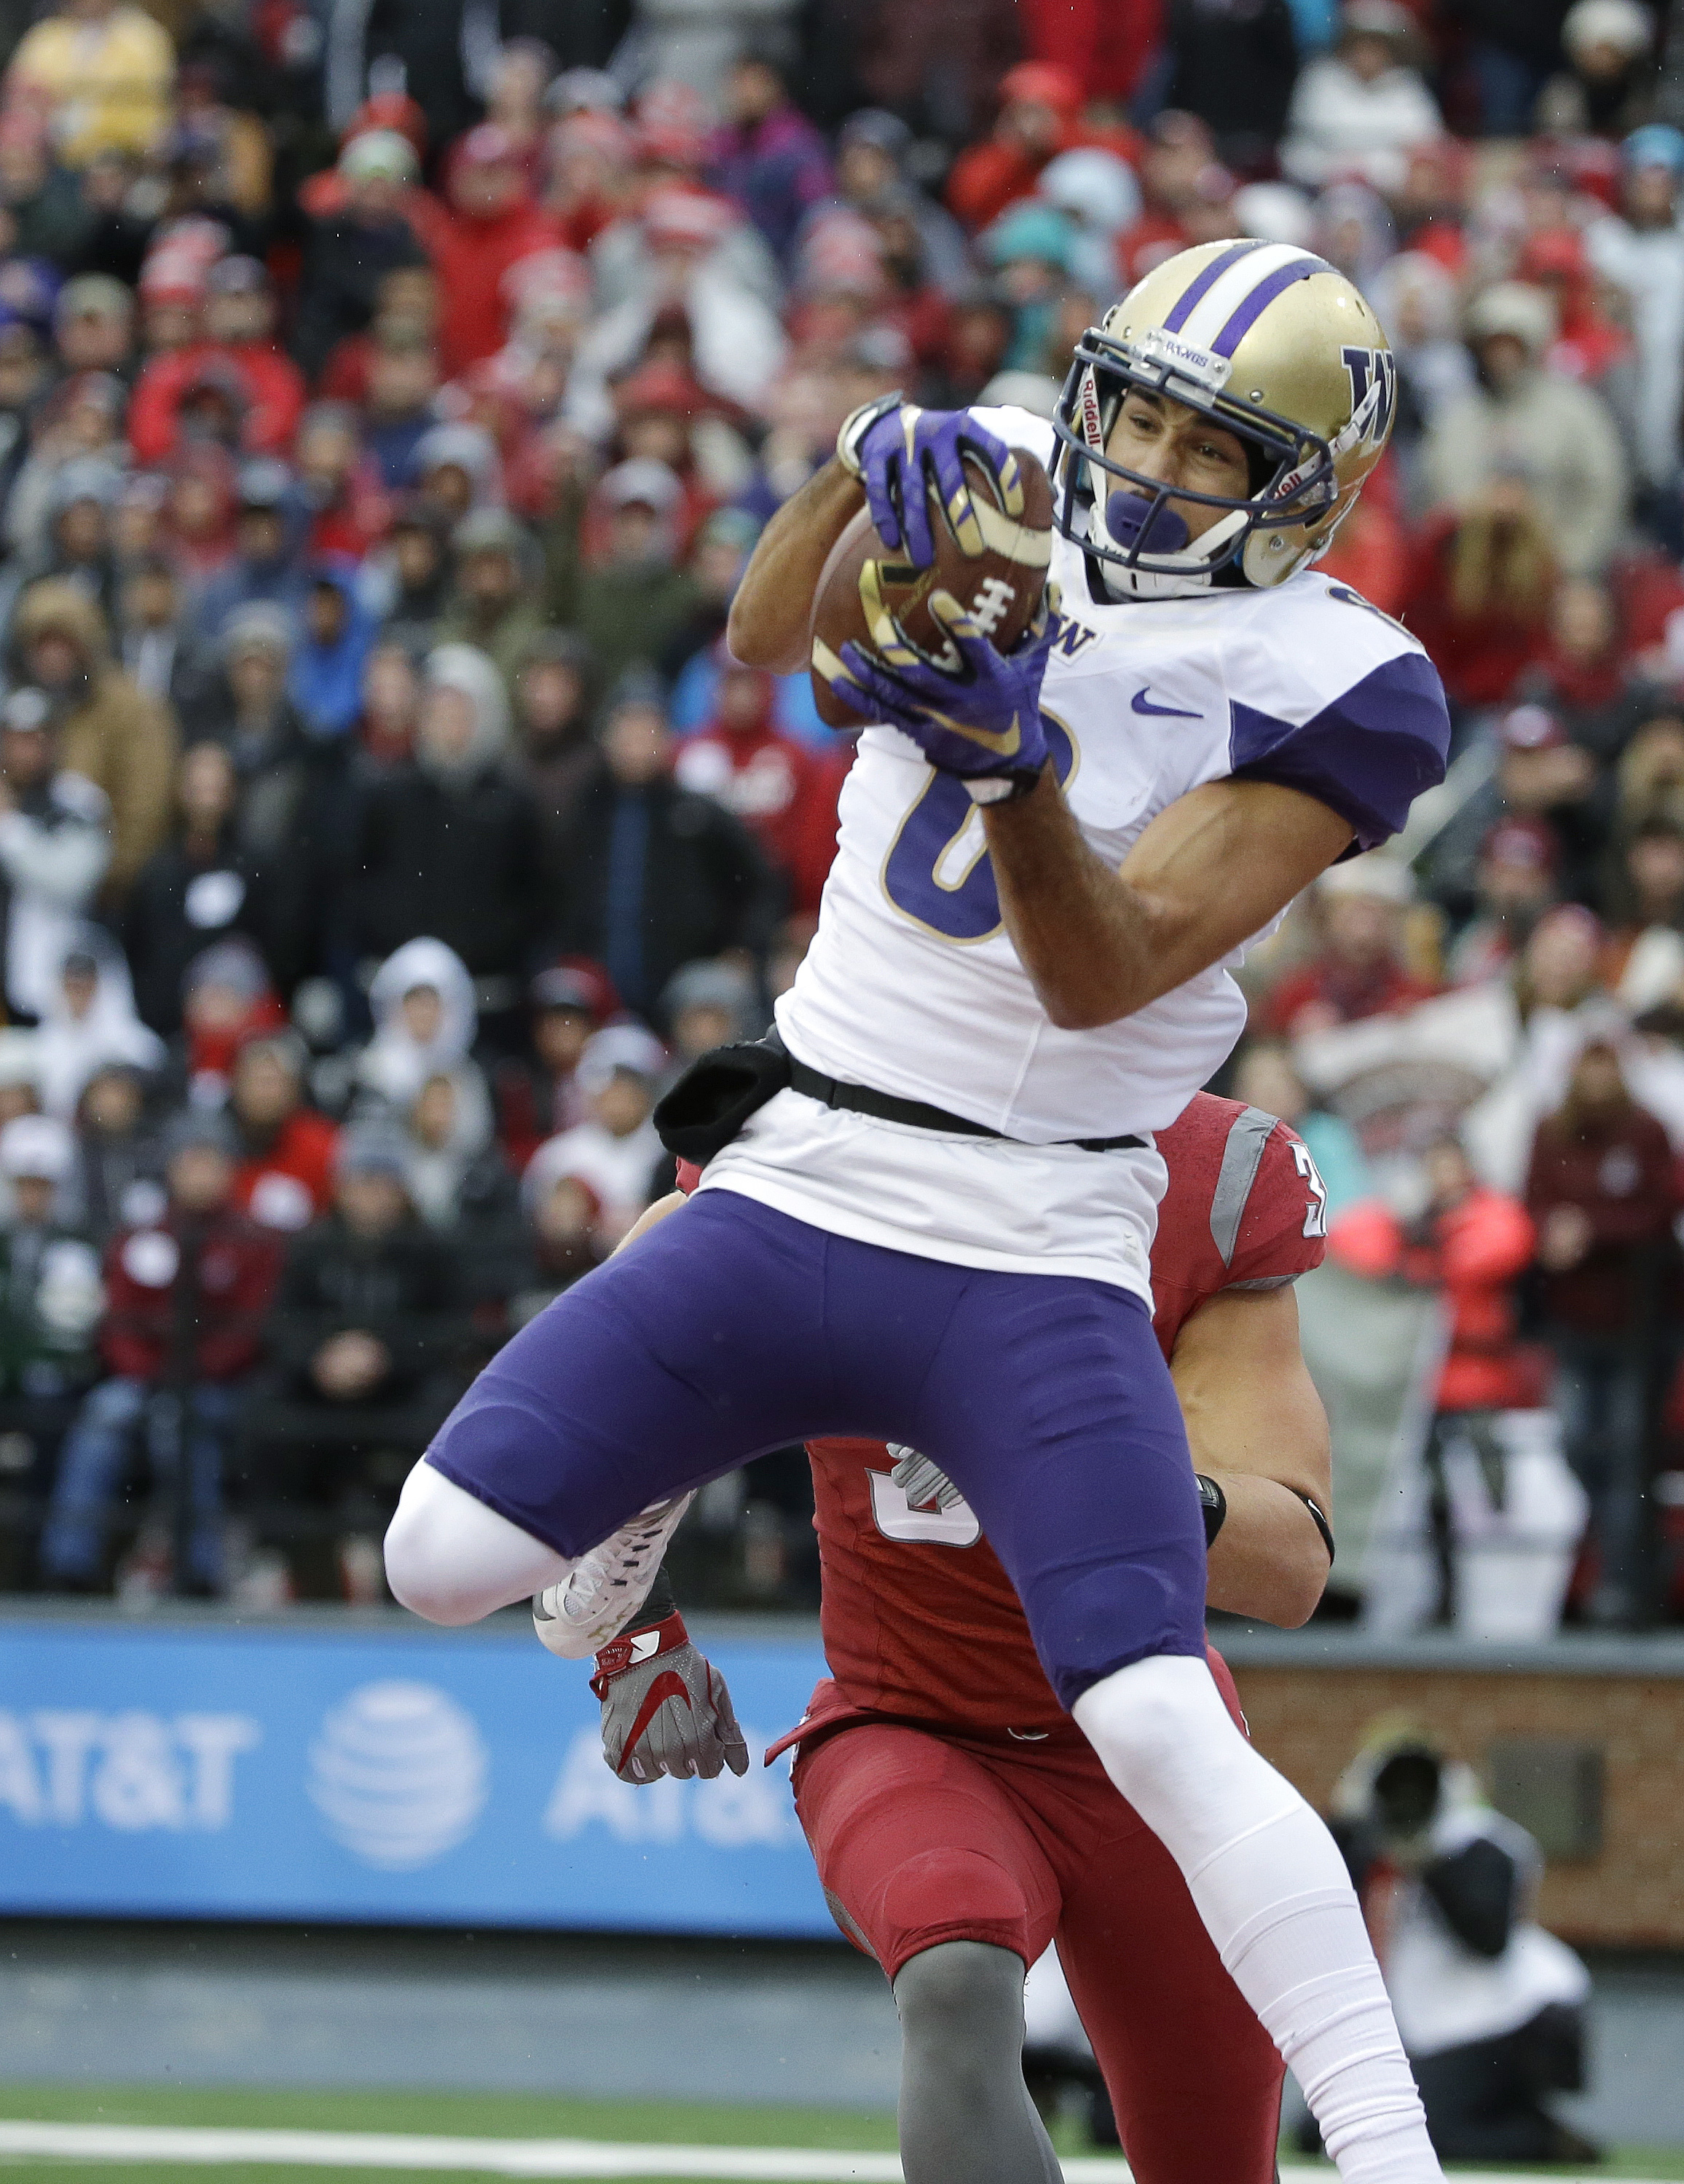 FILE - In this Nov. 25, 2016 file photo, Washington wide receiver Dante Pettis makes a catch in front of Washington State linebacker Isaac Dotson for a touchdown in the first half of an NCAA college football game, in Pullman, Wash. Throughout his first tw